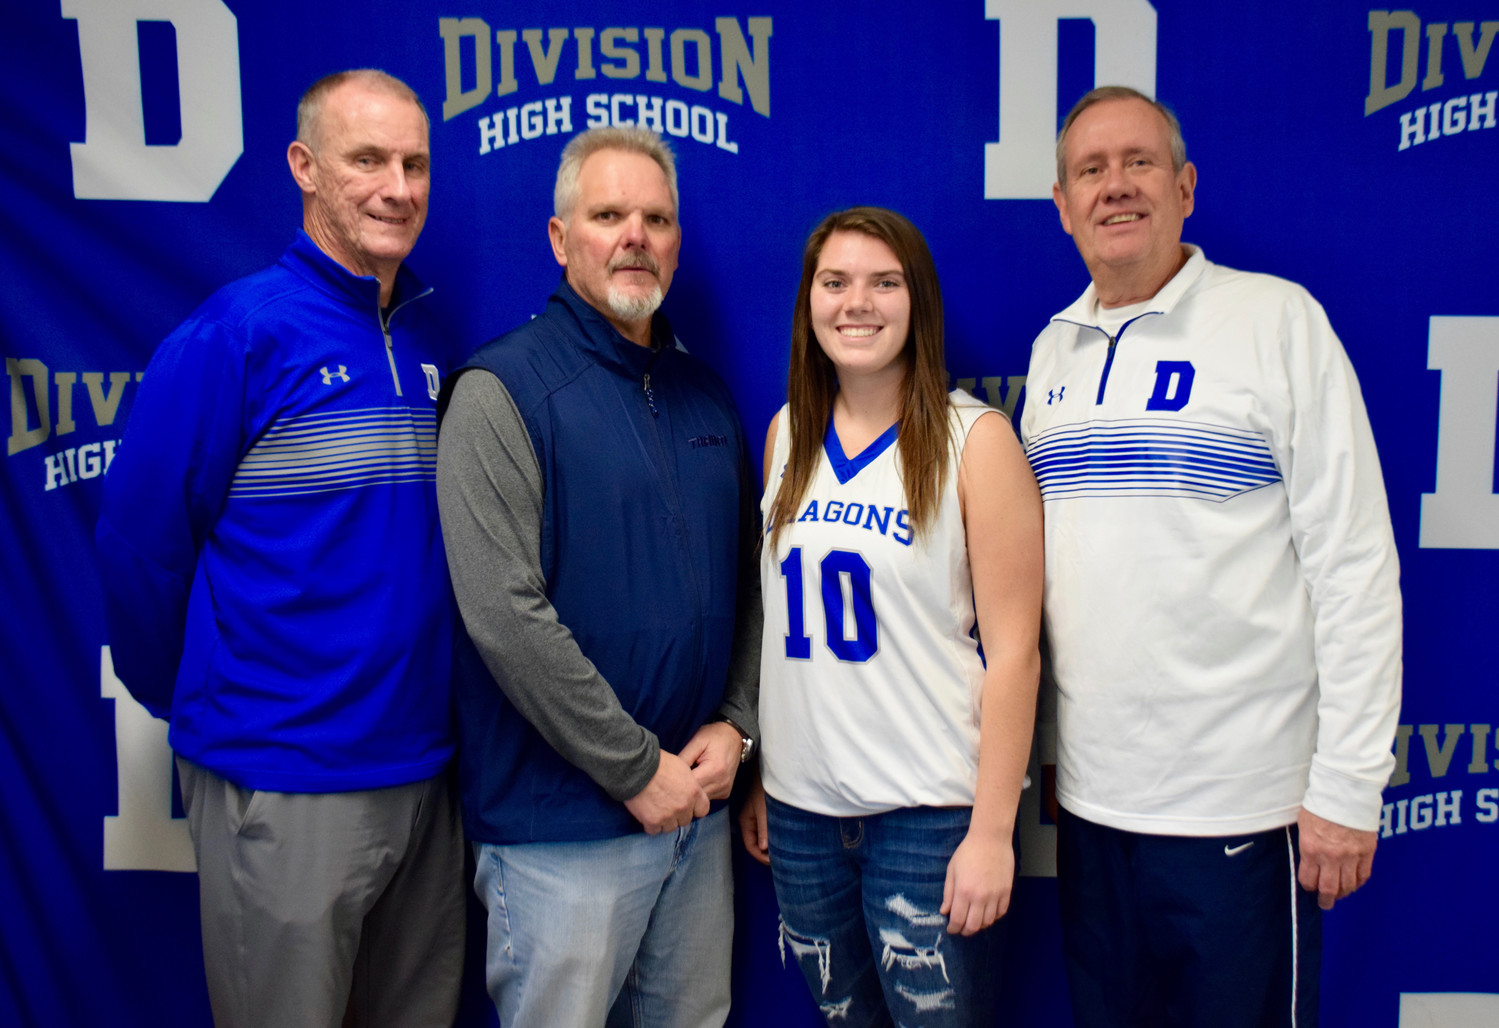 Division Avenue High School senior Madison Gillis with, from left, phys. ed. department chairman Sean Smith, coach Ray Weidlein and coach Steve Kissane. Gillis scored her 1,000th career point on Jan. 5.